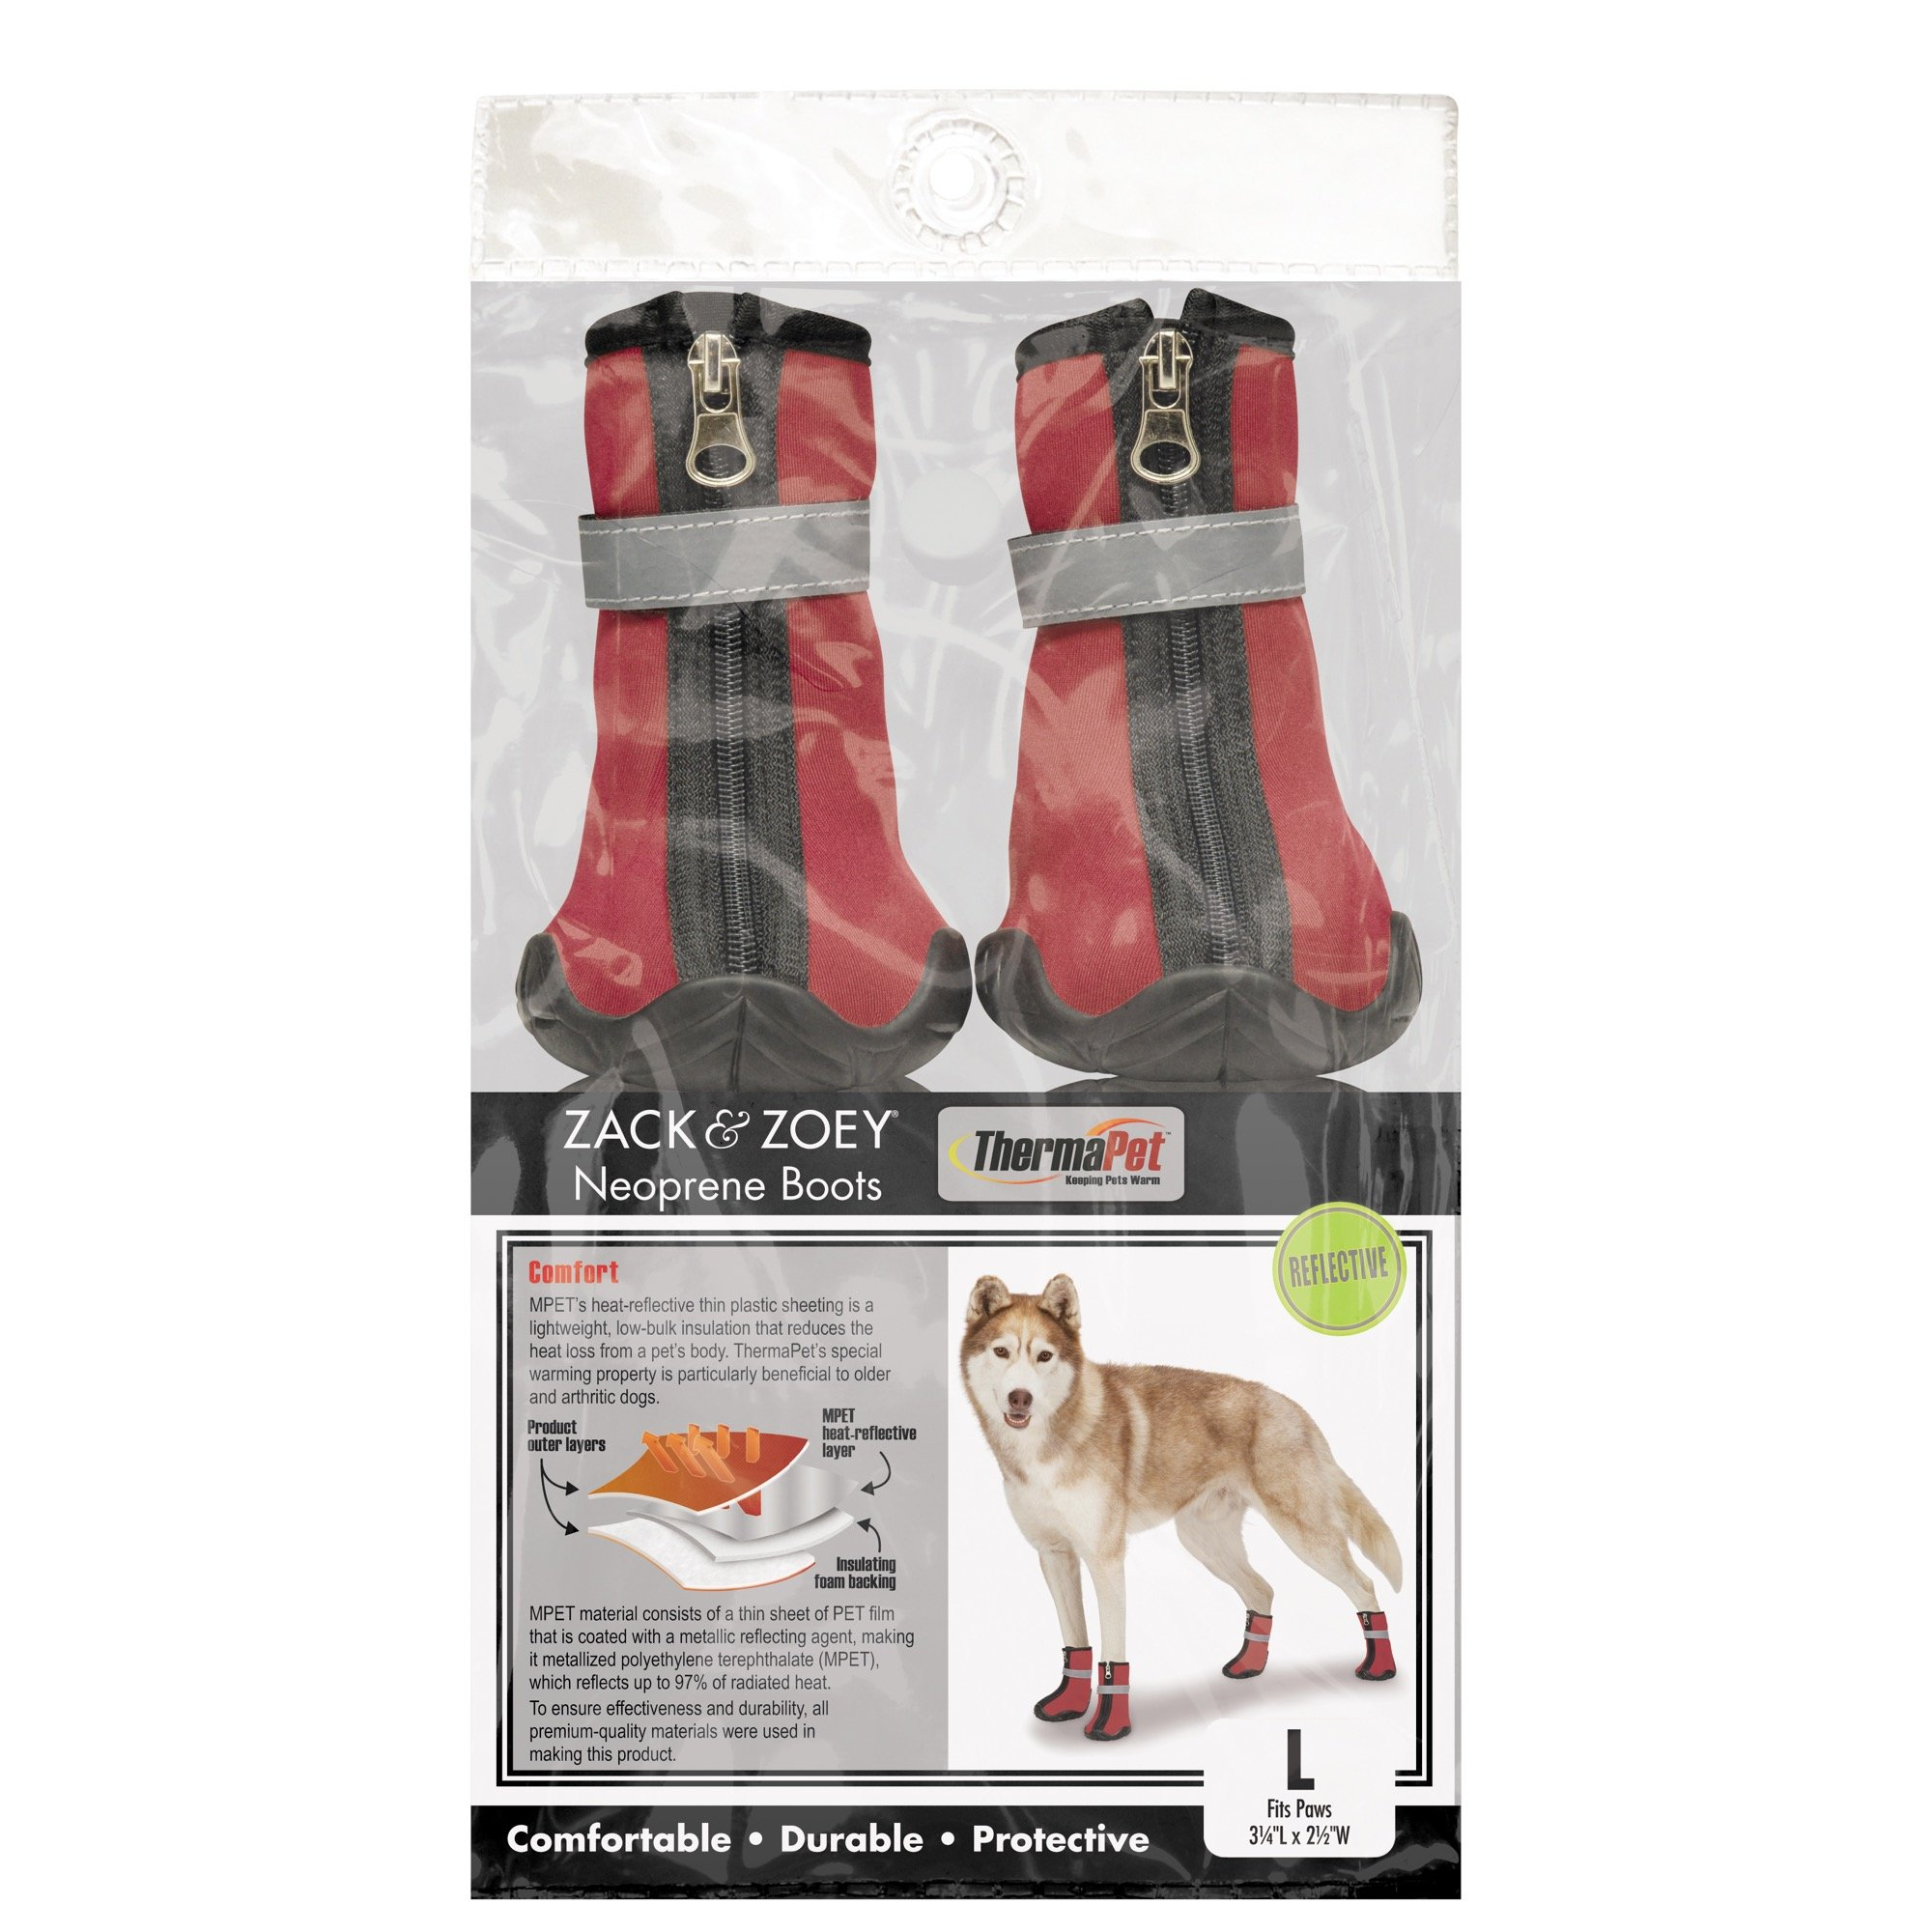 Zack & Zoey ThermaPet Neoprene Boots, Red, XX-Small by Zack & Zoey